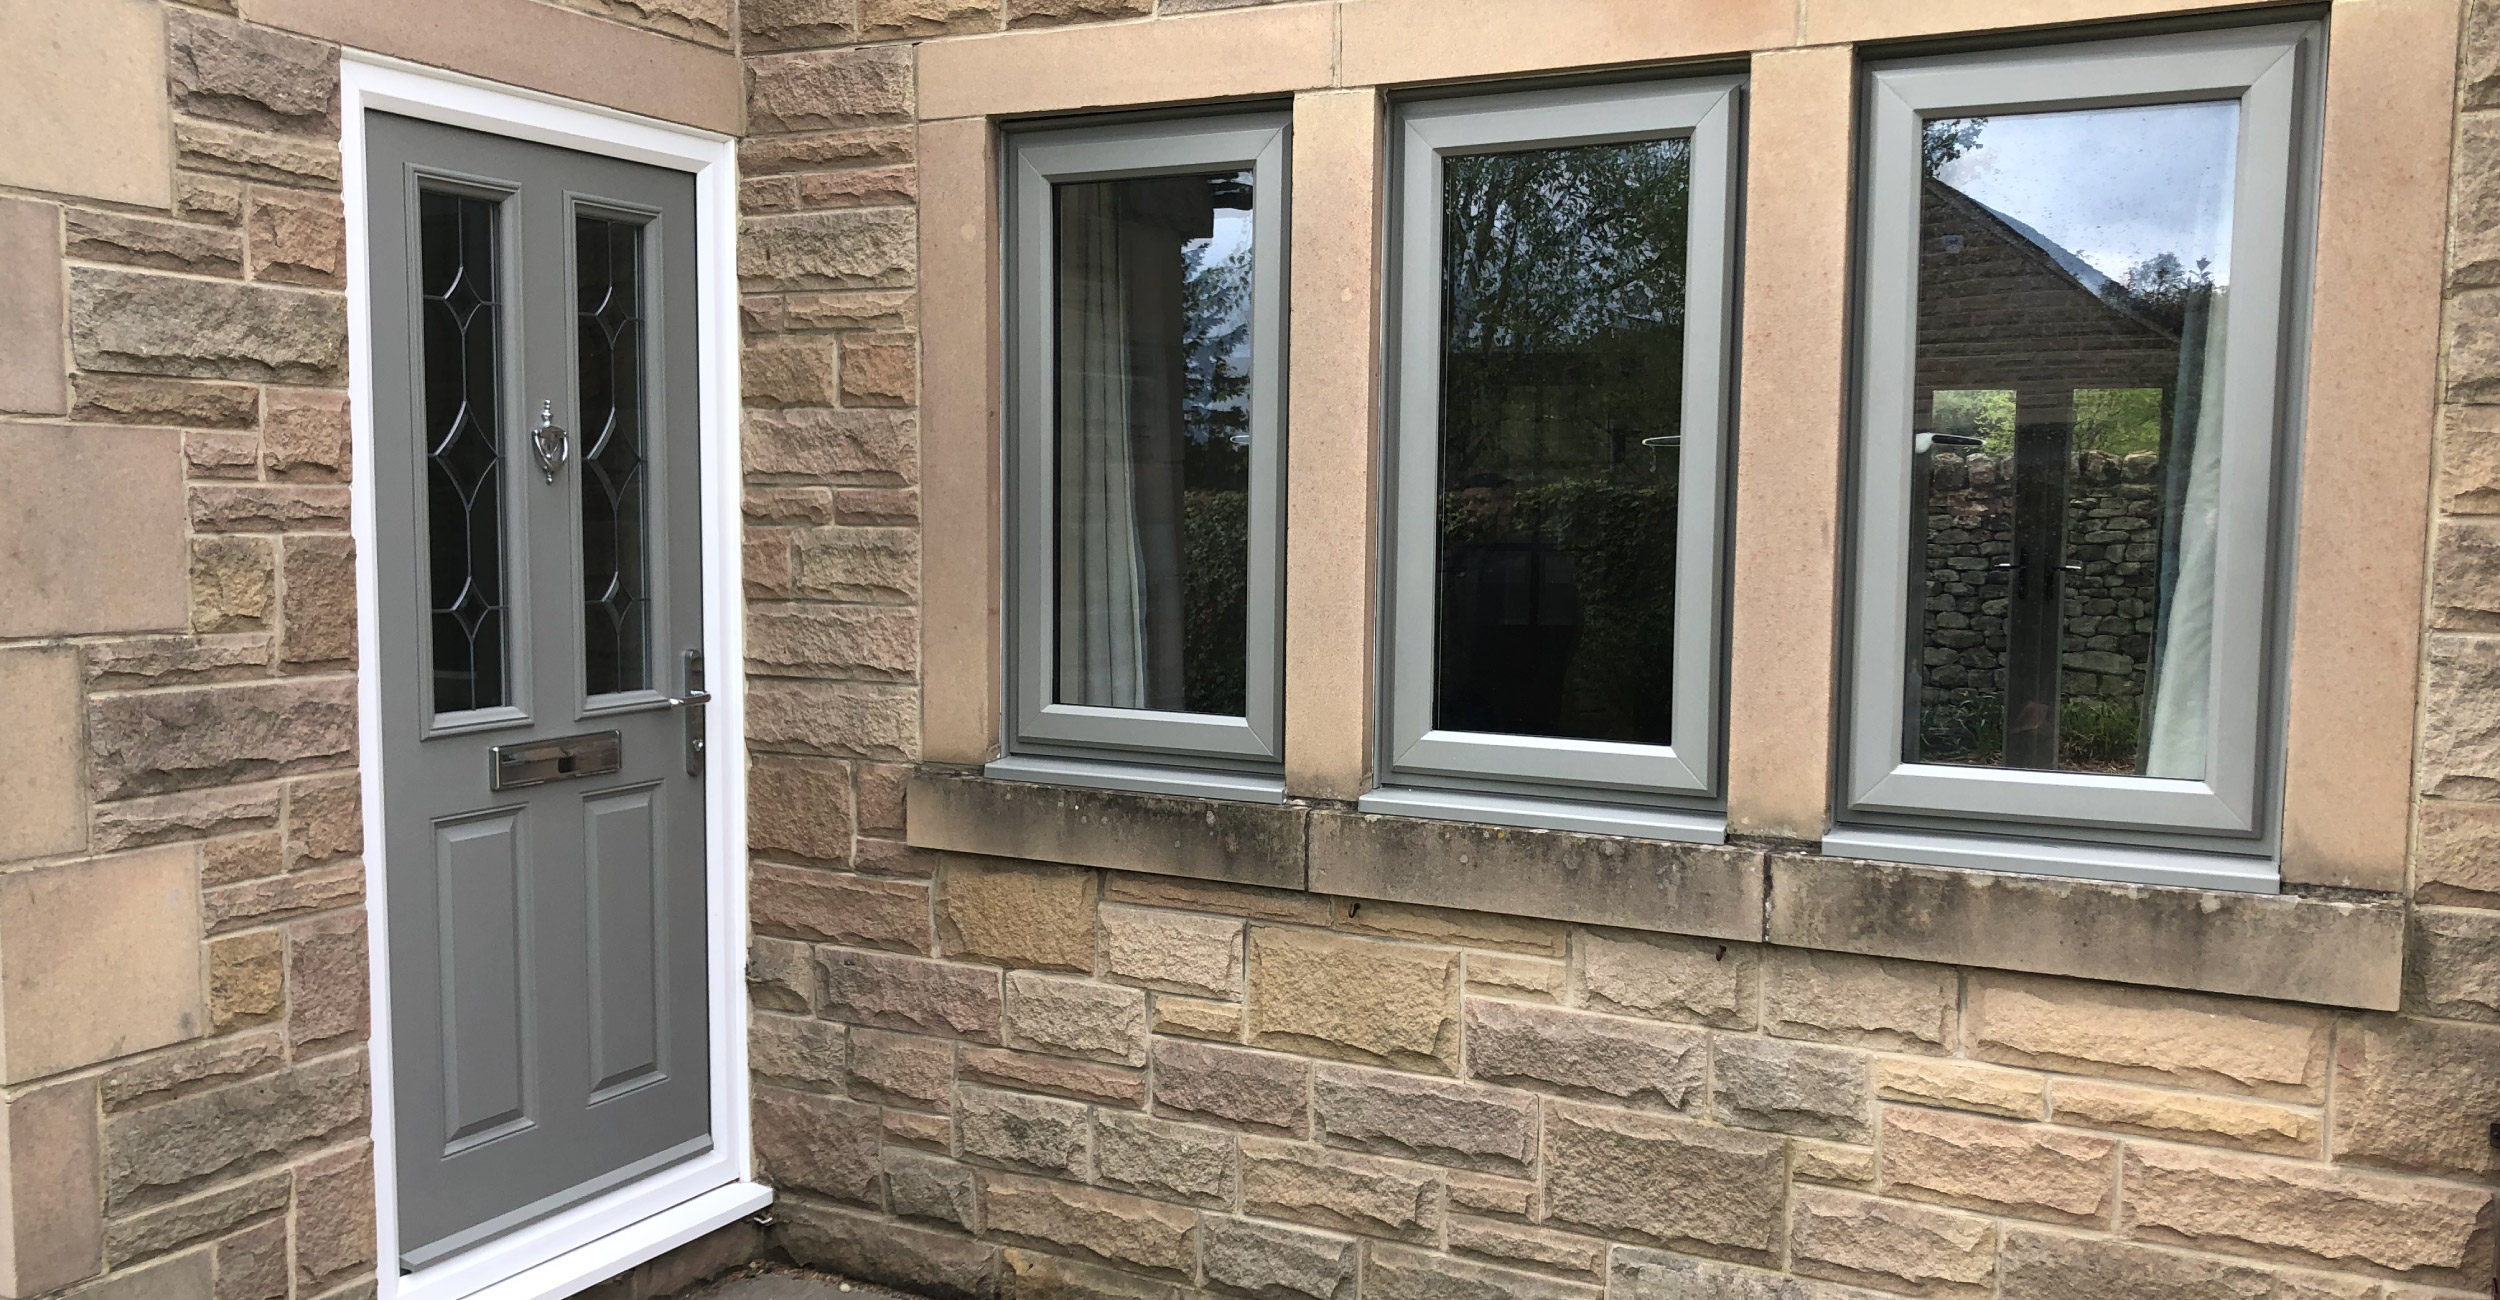 Change the colours of your windows and doors with Spraymaster South West. No matter the door type we can spray your doors a new paint colour, which is a much cheaper alternative to replacing them. We don't even need to remove your windows from your property in order to spray them.